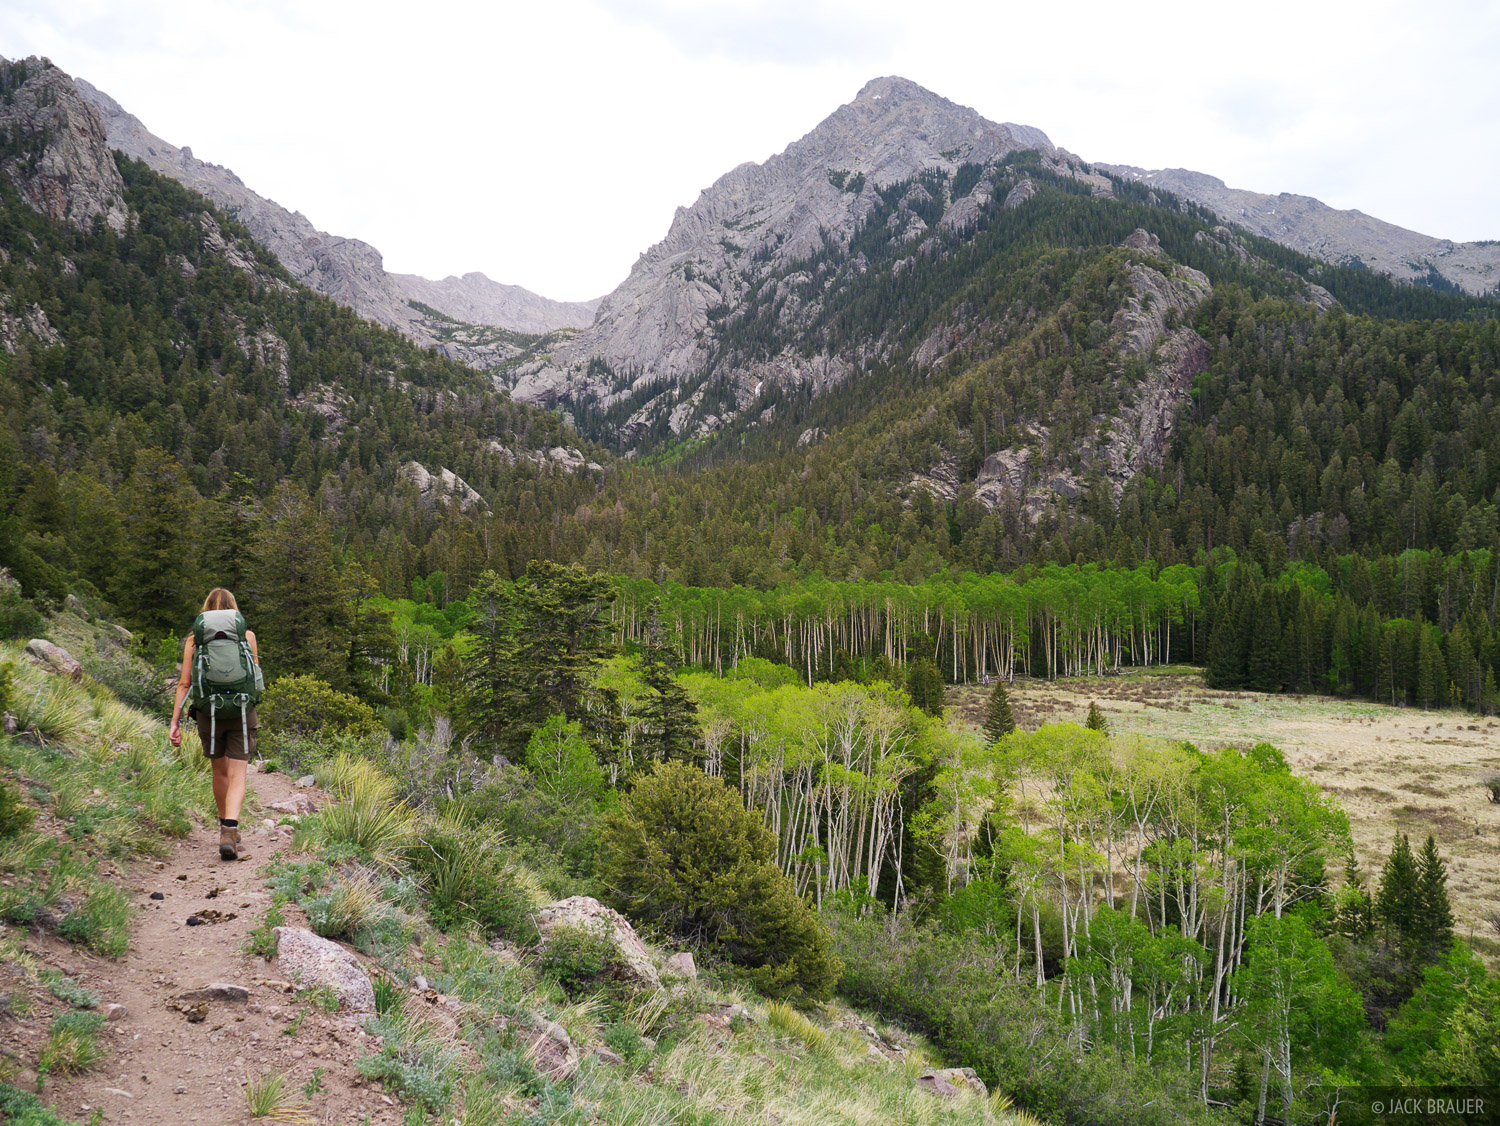 Hiking into the Sangre de Cristo Range to Willow Lake.